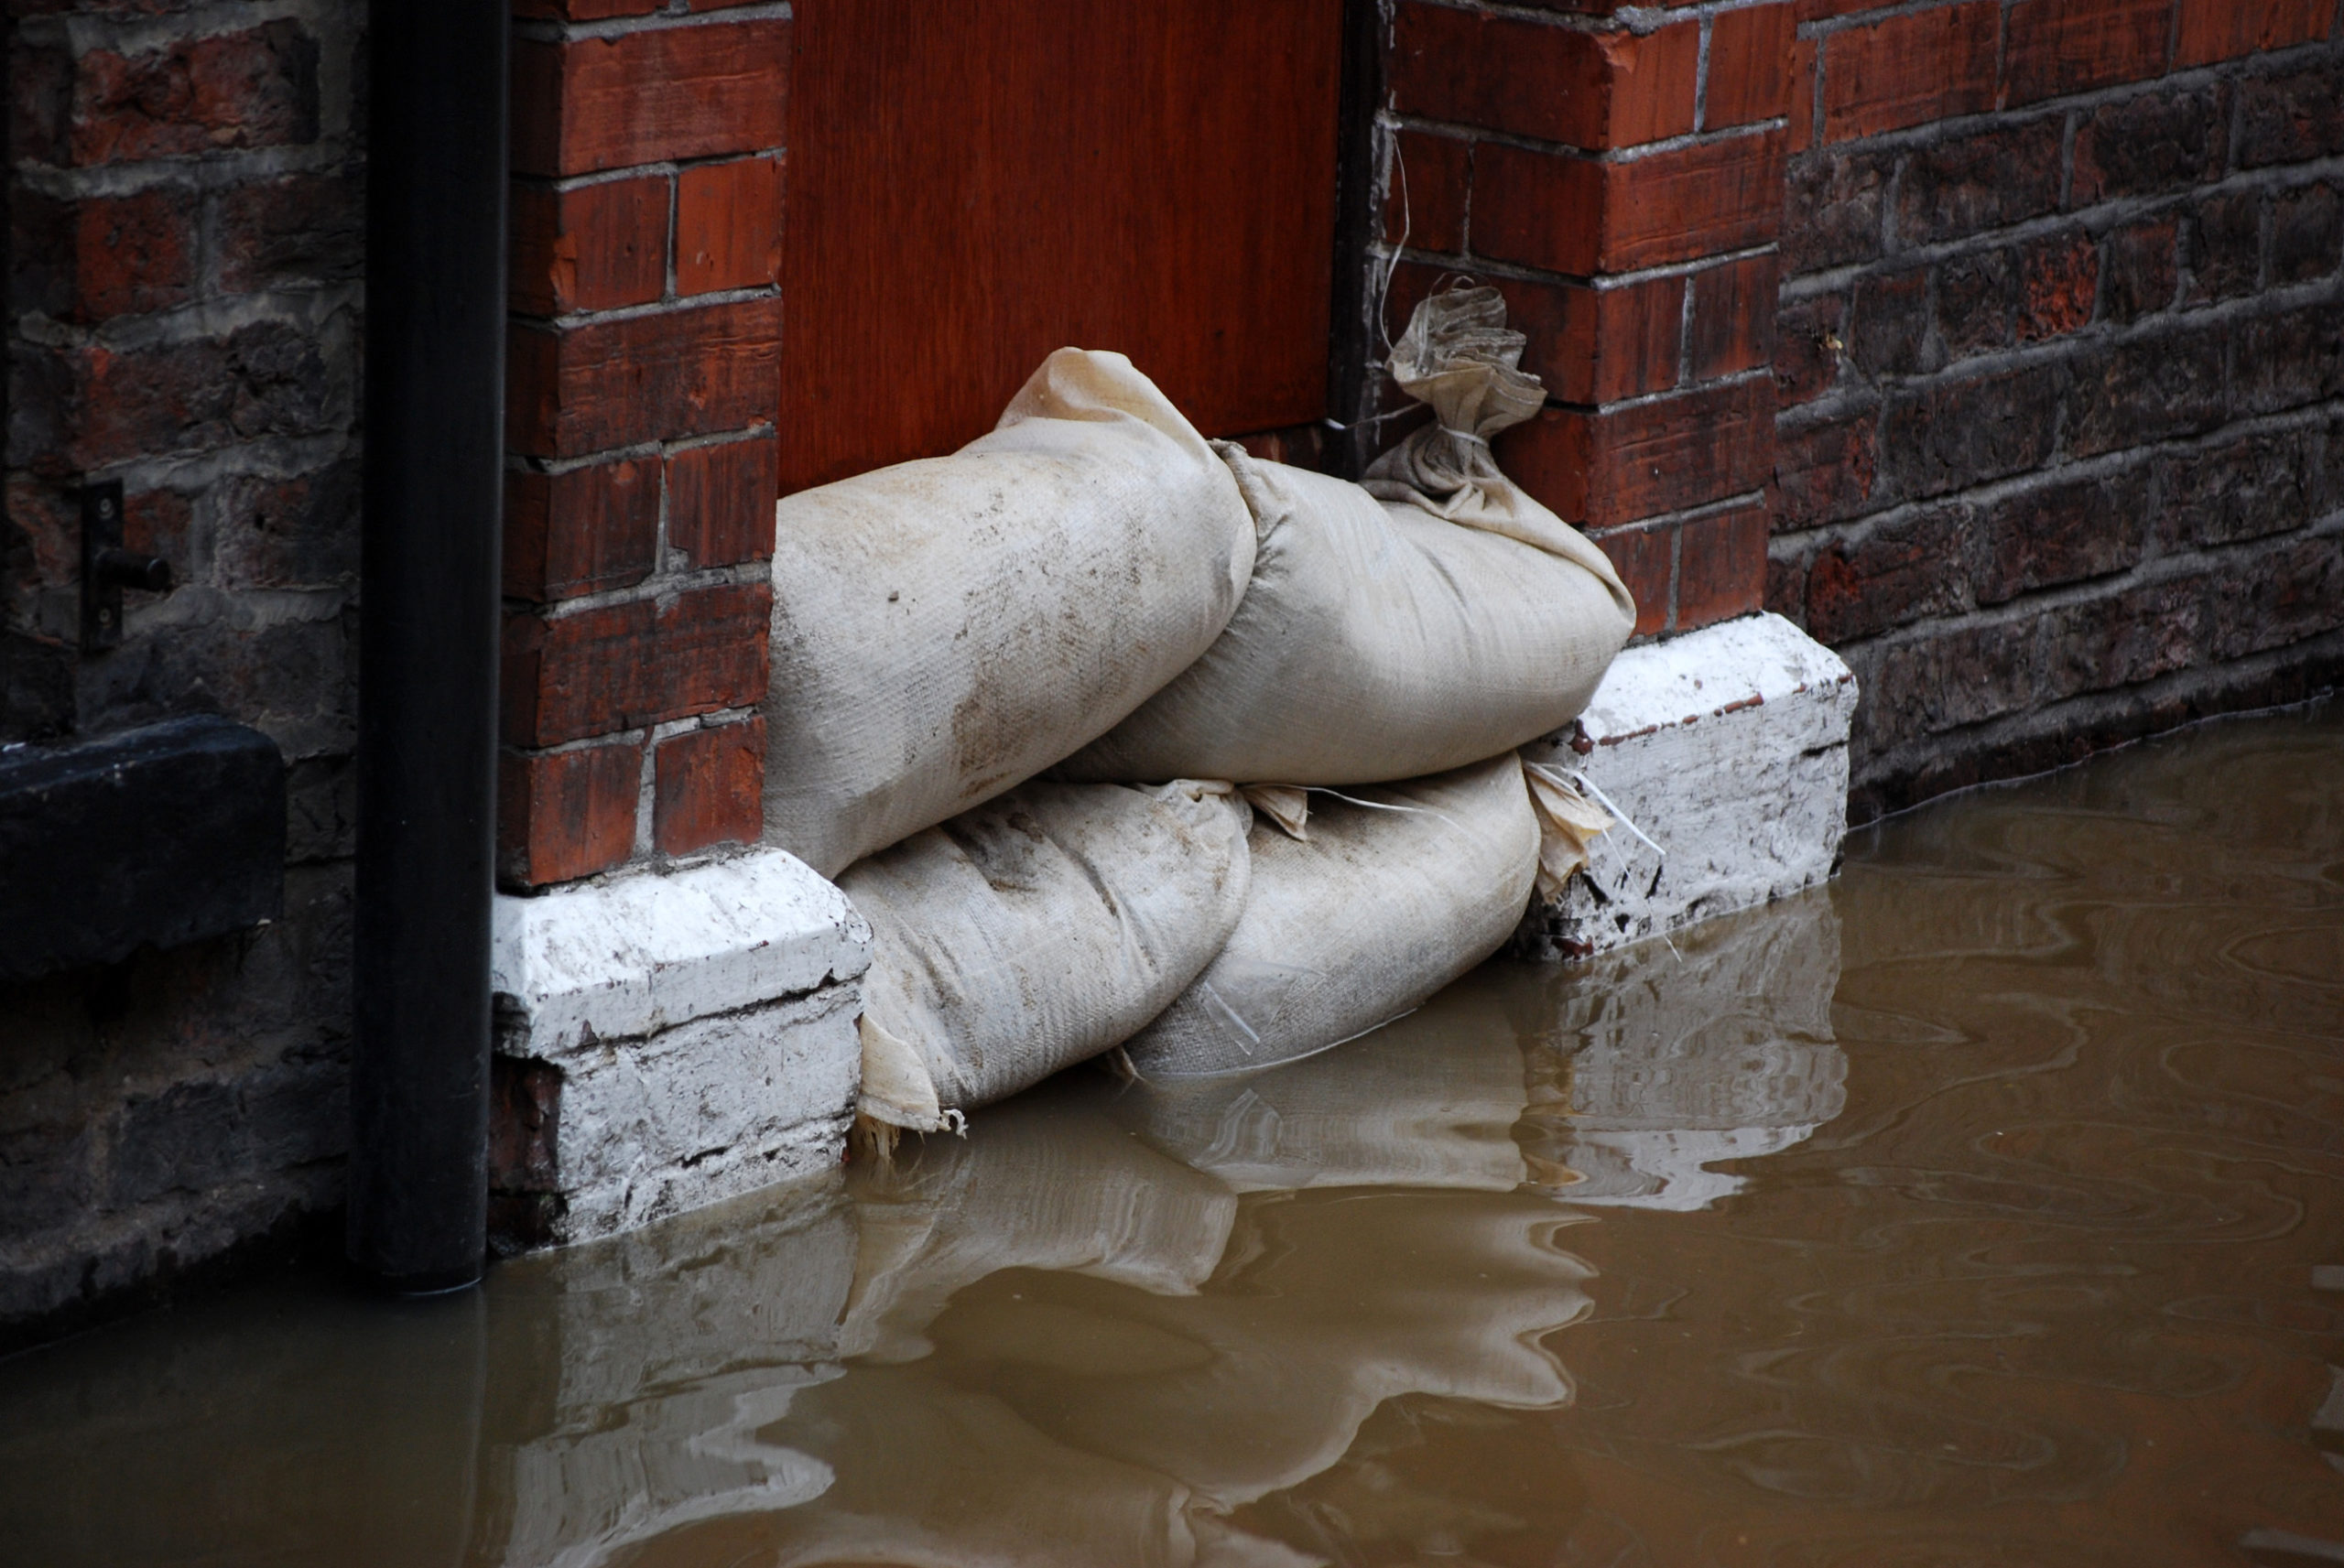 Sandbags available in Waterford to prevent flooding